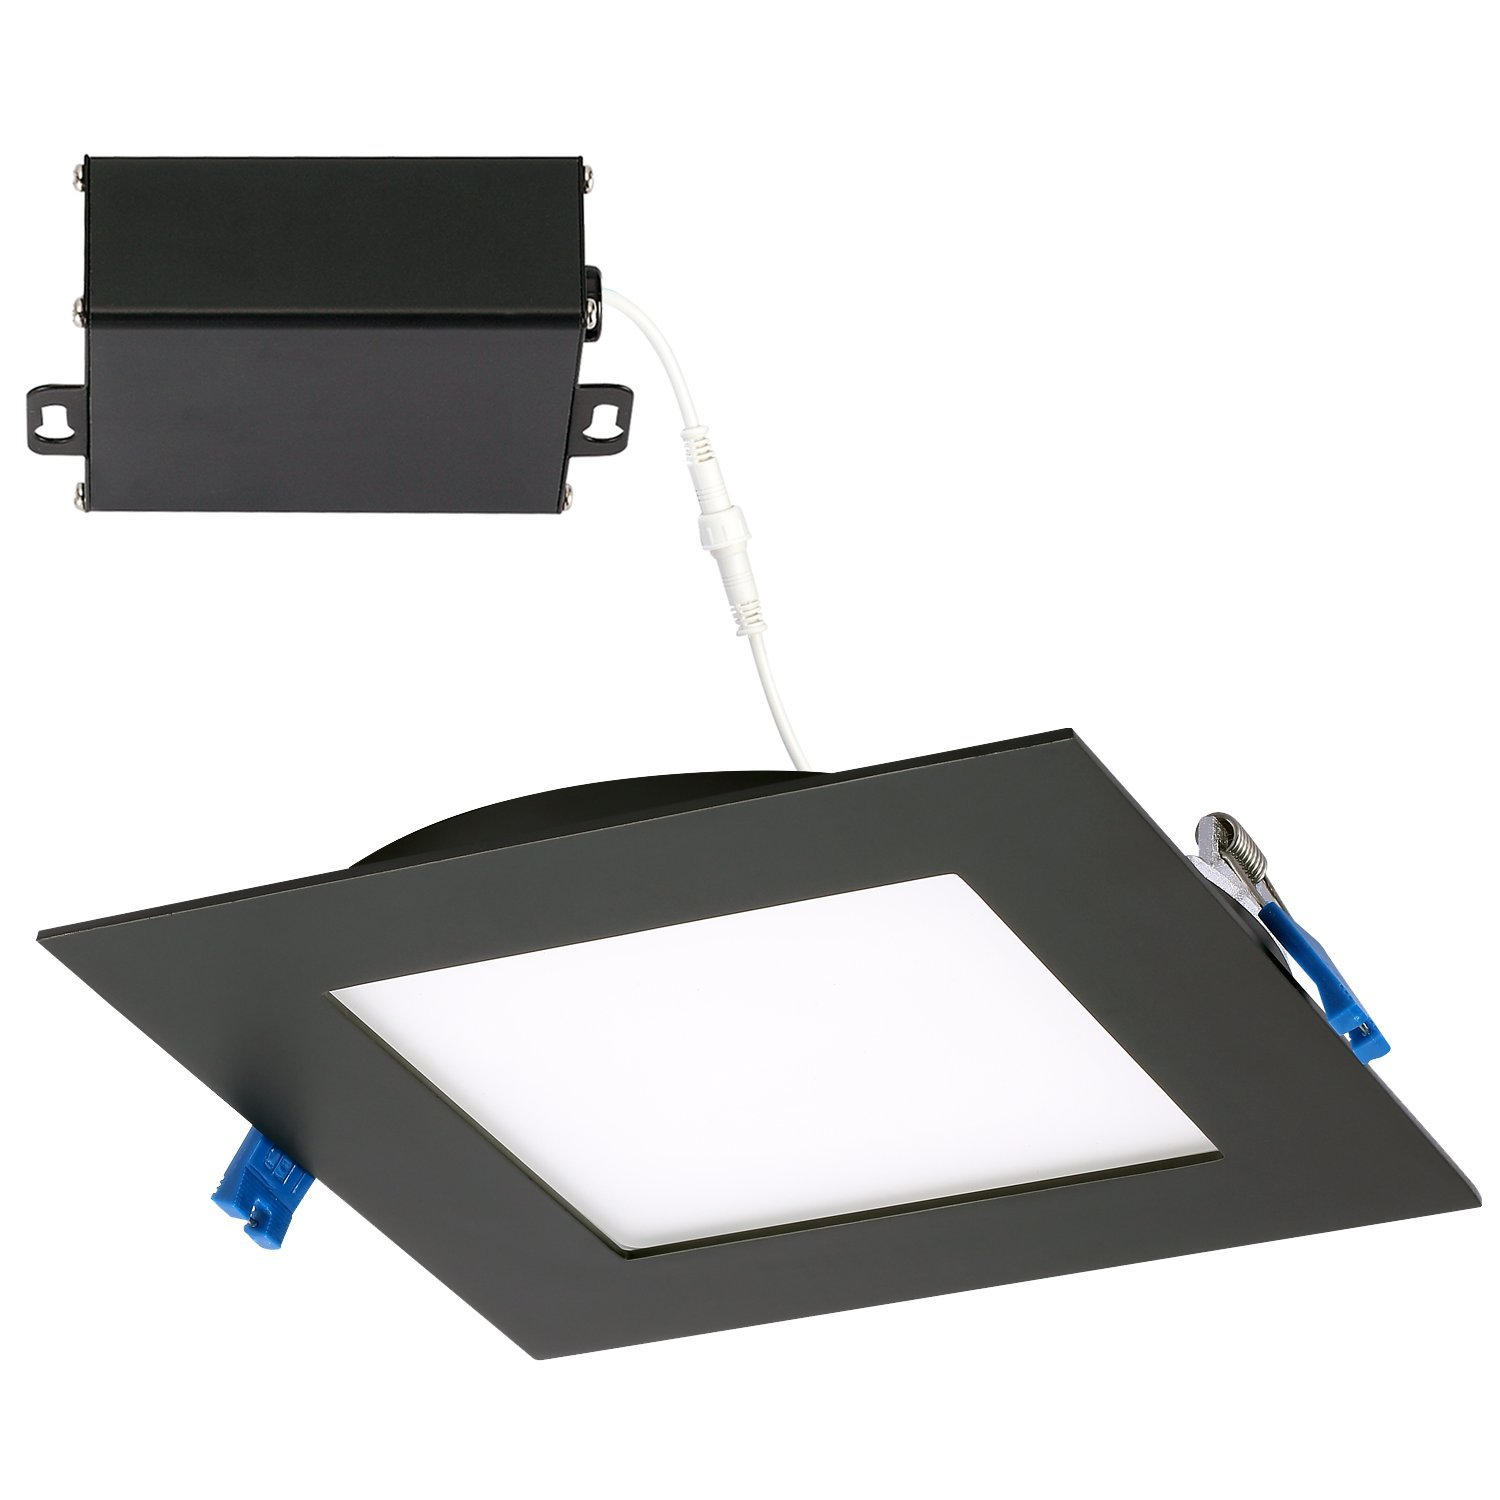 GetInLight Slim Dimmable 6 inch LED Recessed Lighting, Square Ceiling Panel, Junction Box Included, 4000K(Bright White), 12W, 800lm, Black Finished, cETLus Listed, IN-0308-2-BK-40